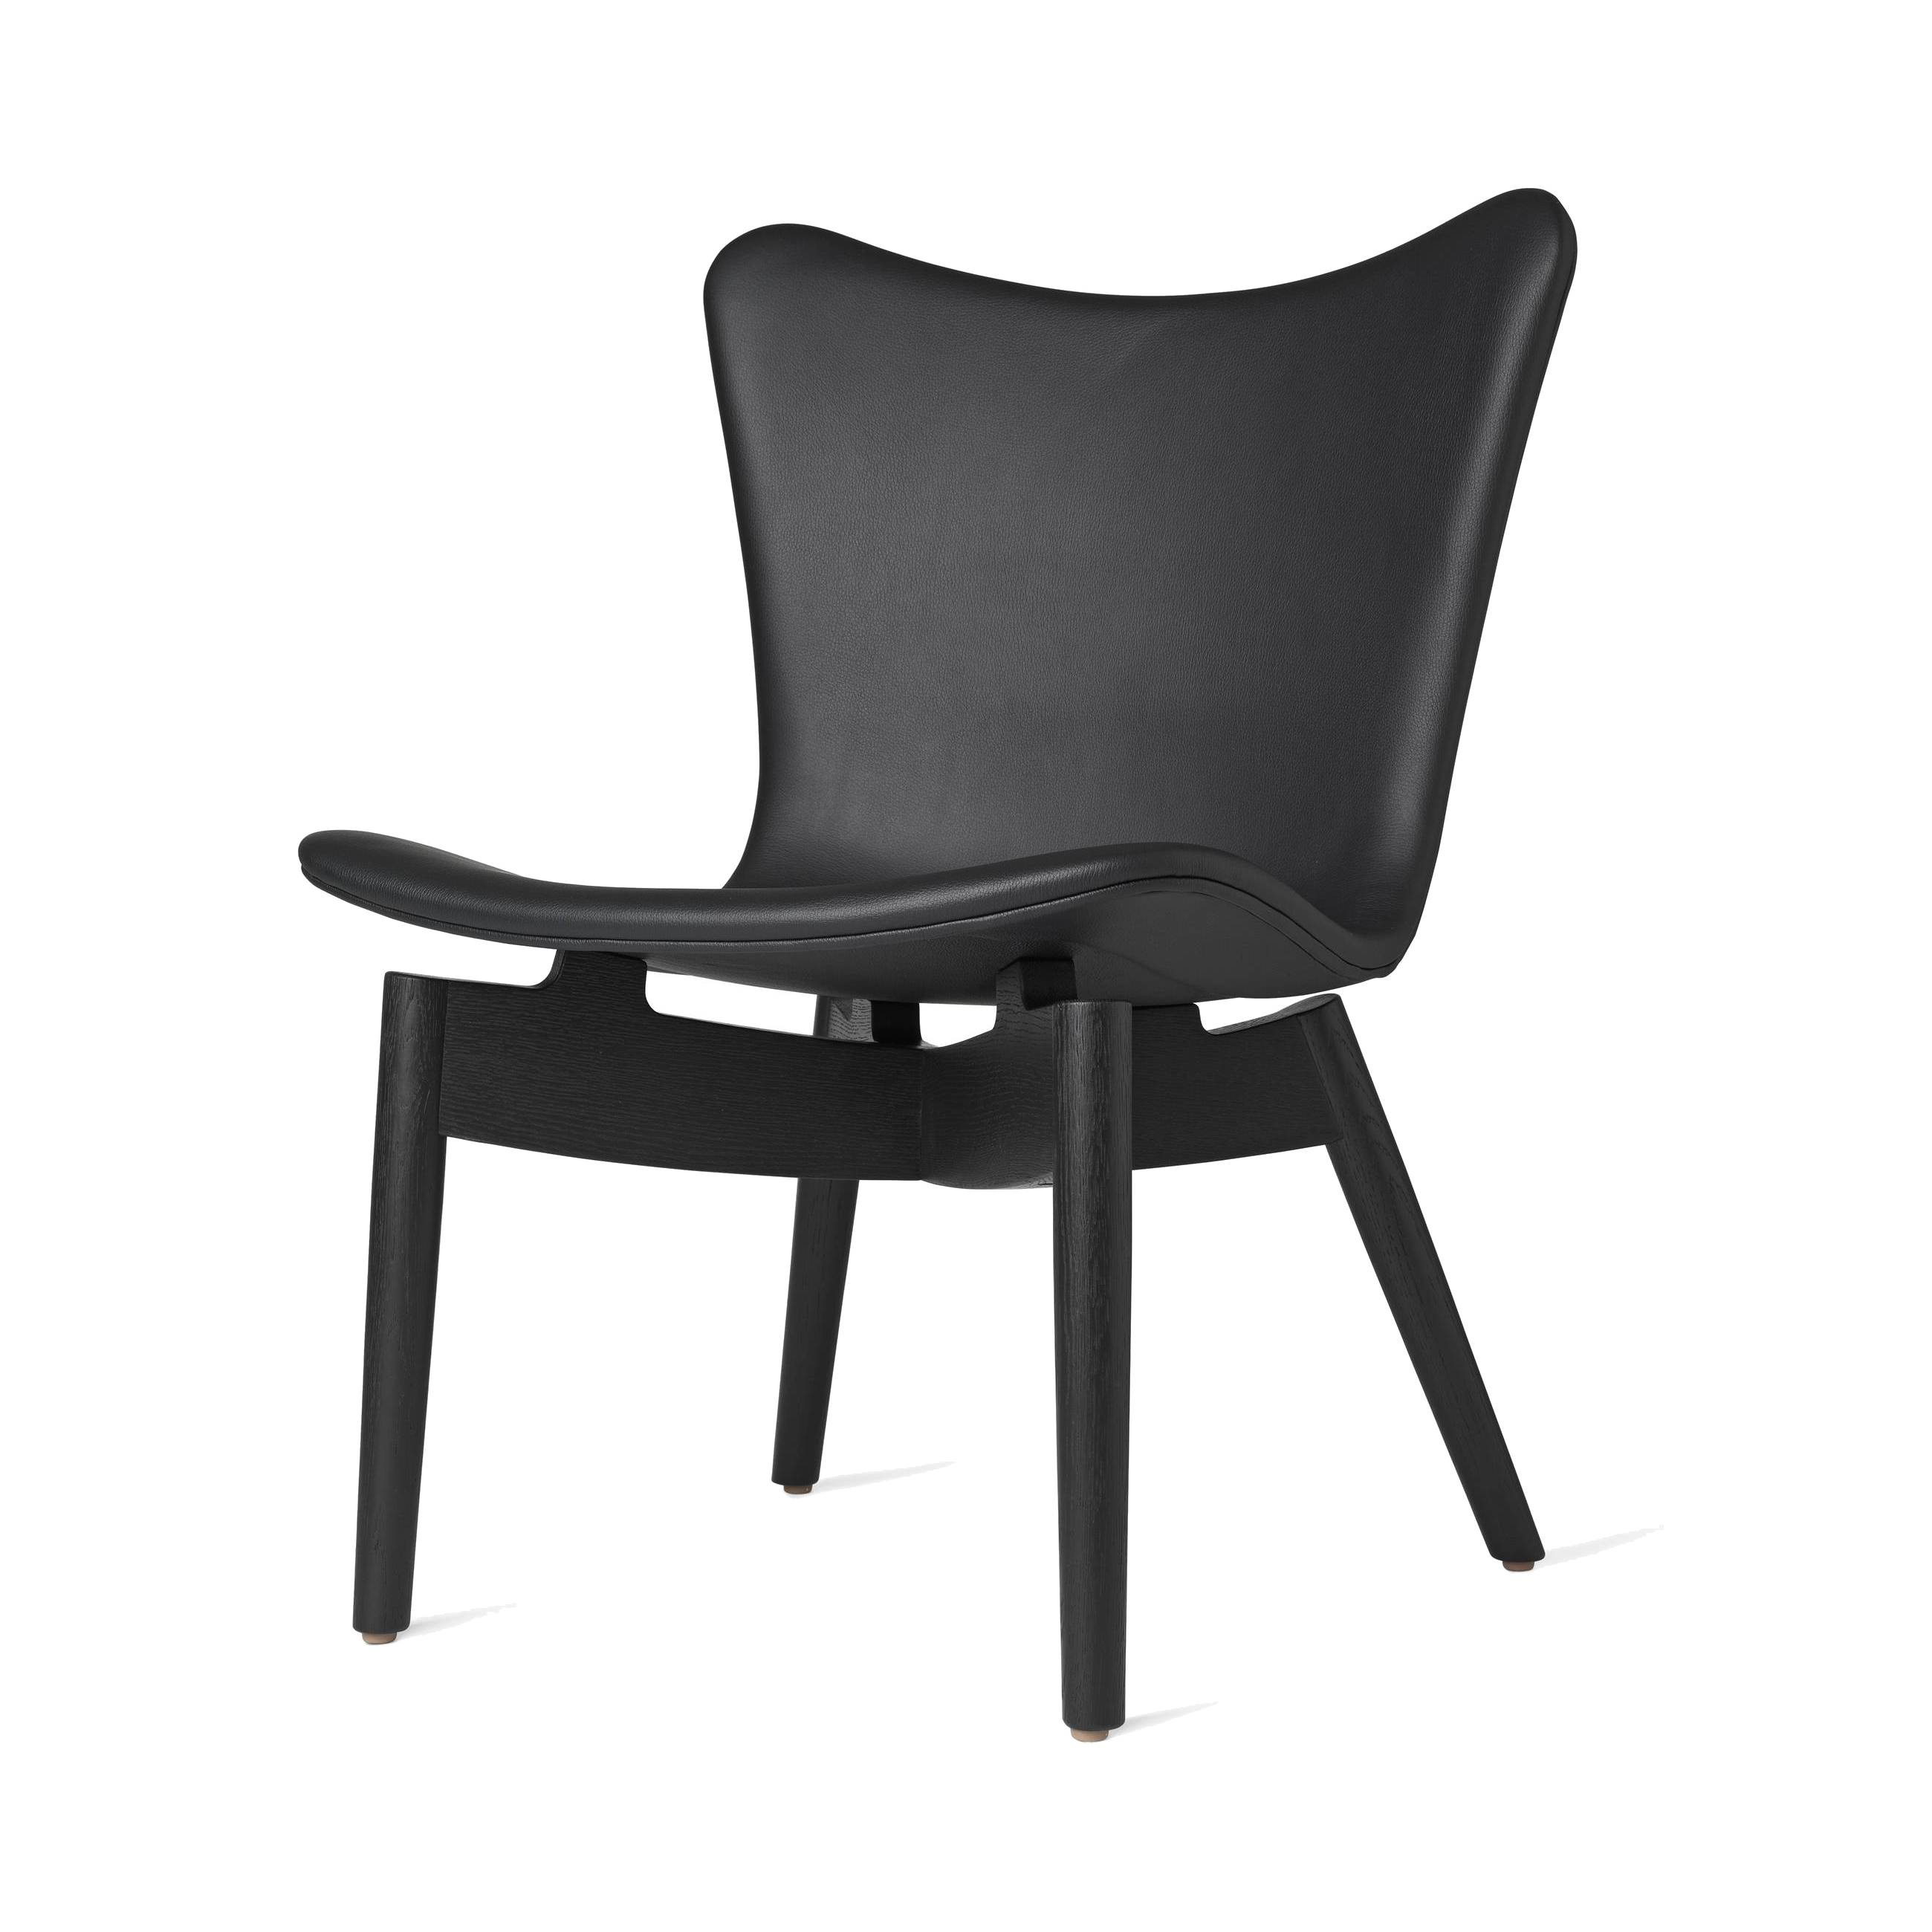 Shell Lounge Chair: Ultra Black Leather + Black Stained Oak